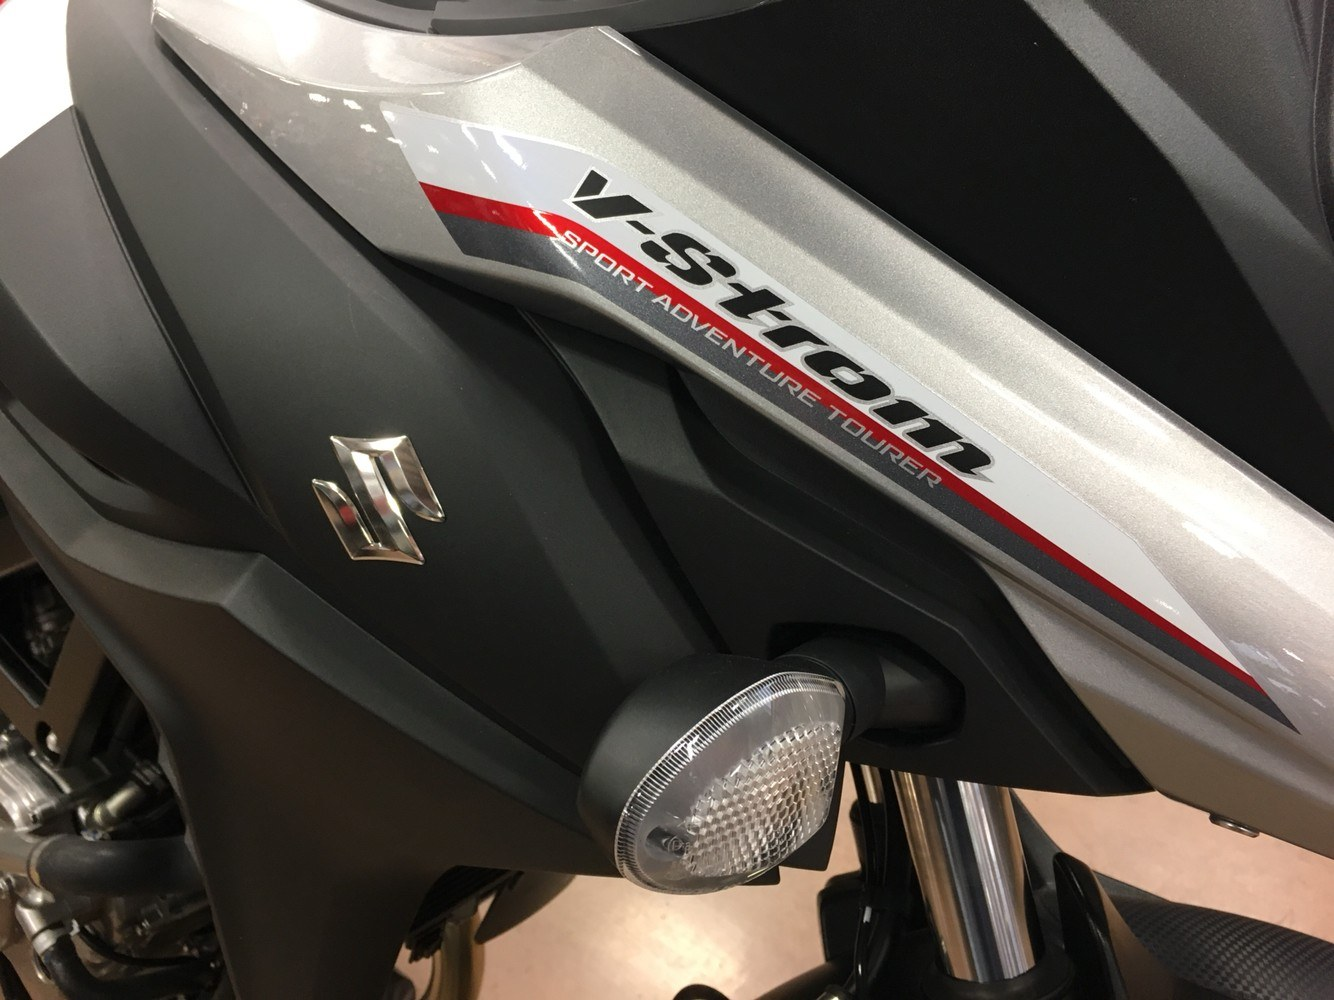 2017 Suzuki V-Strom 650 in Evansville, Indiana - Photo 21